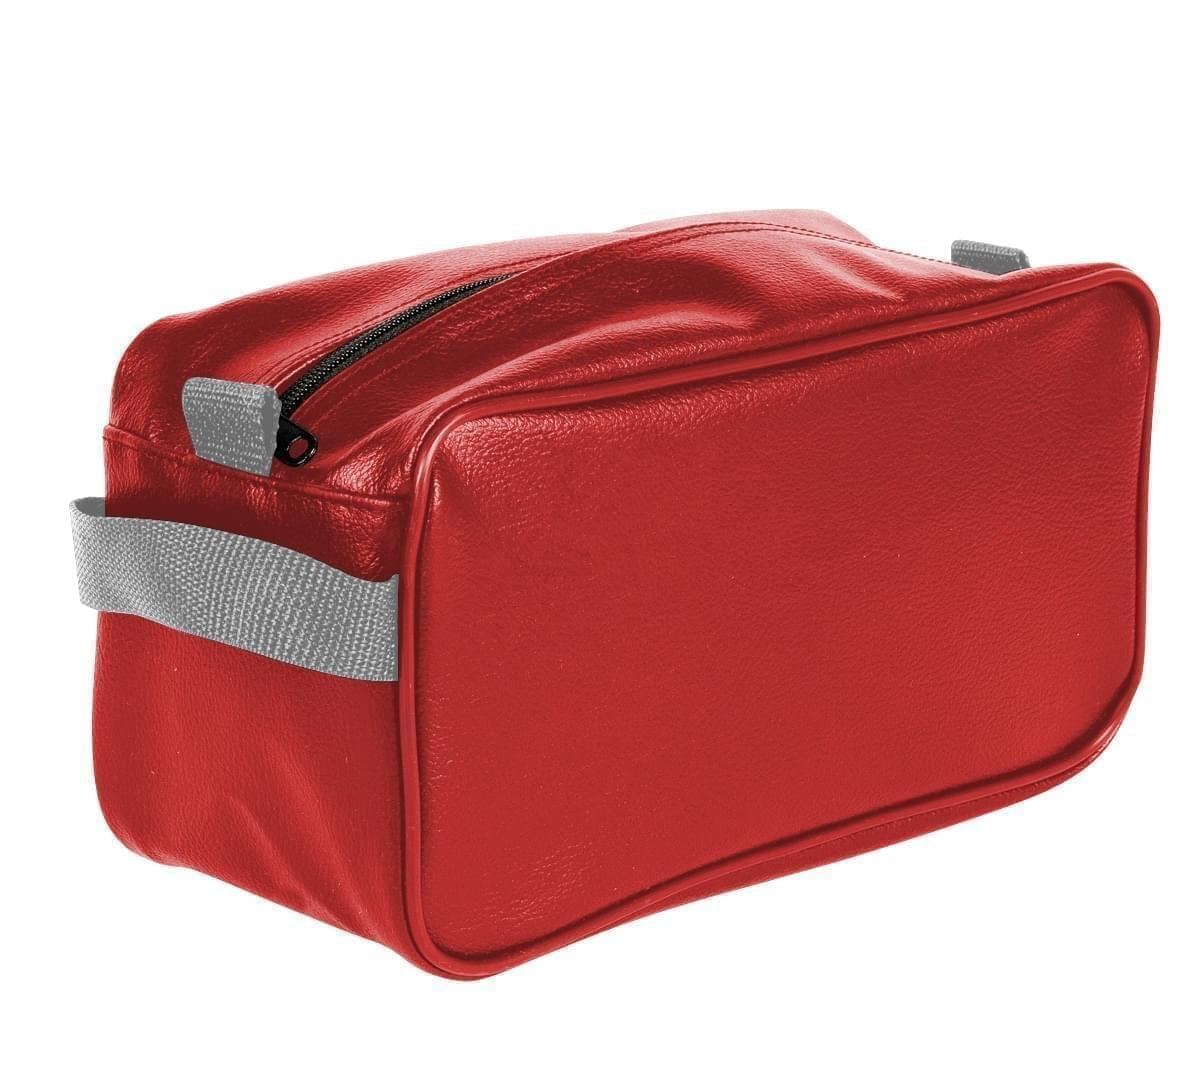 USA Made Cosmetic & Toiletry Cases, Red-Grey, 3000996-AZU